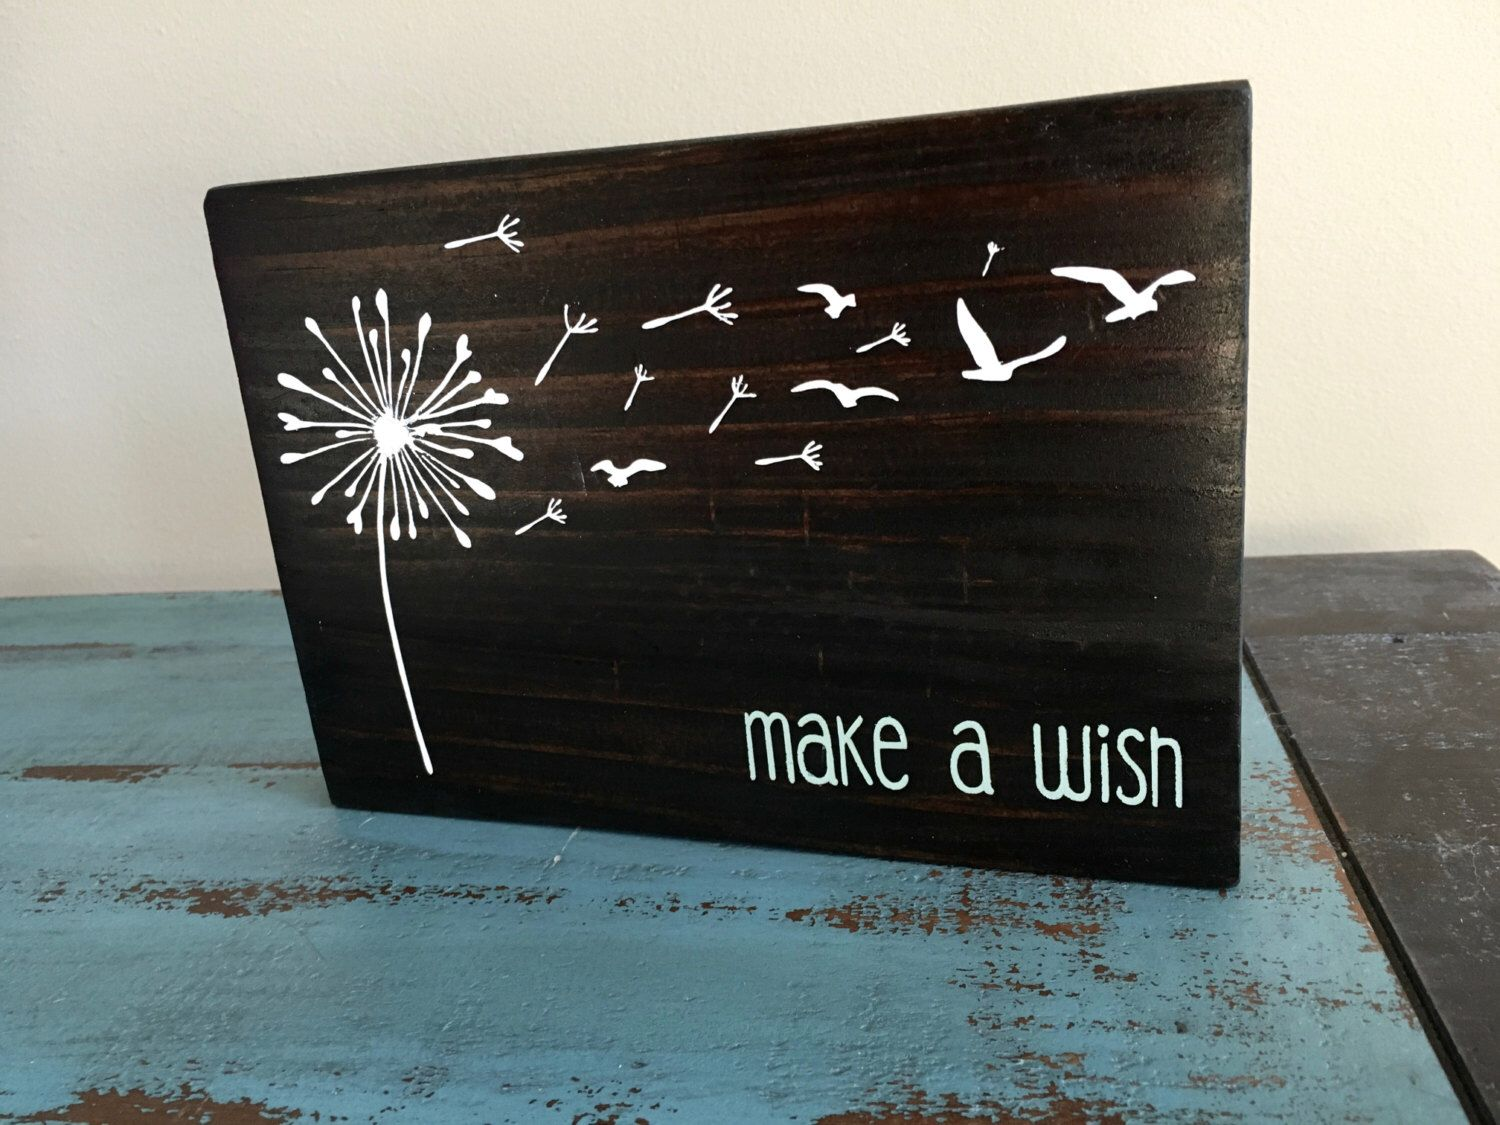 Wall Sign Decor Amazing Rustic Hand Painted Make A Wish Dandelion Wood Signwall Decor Decorating Design